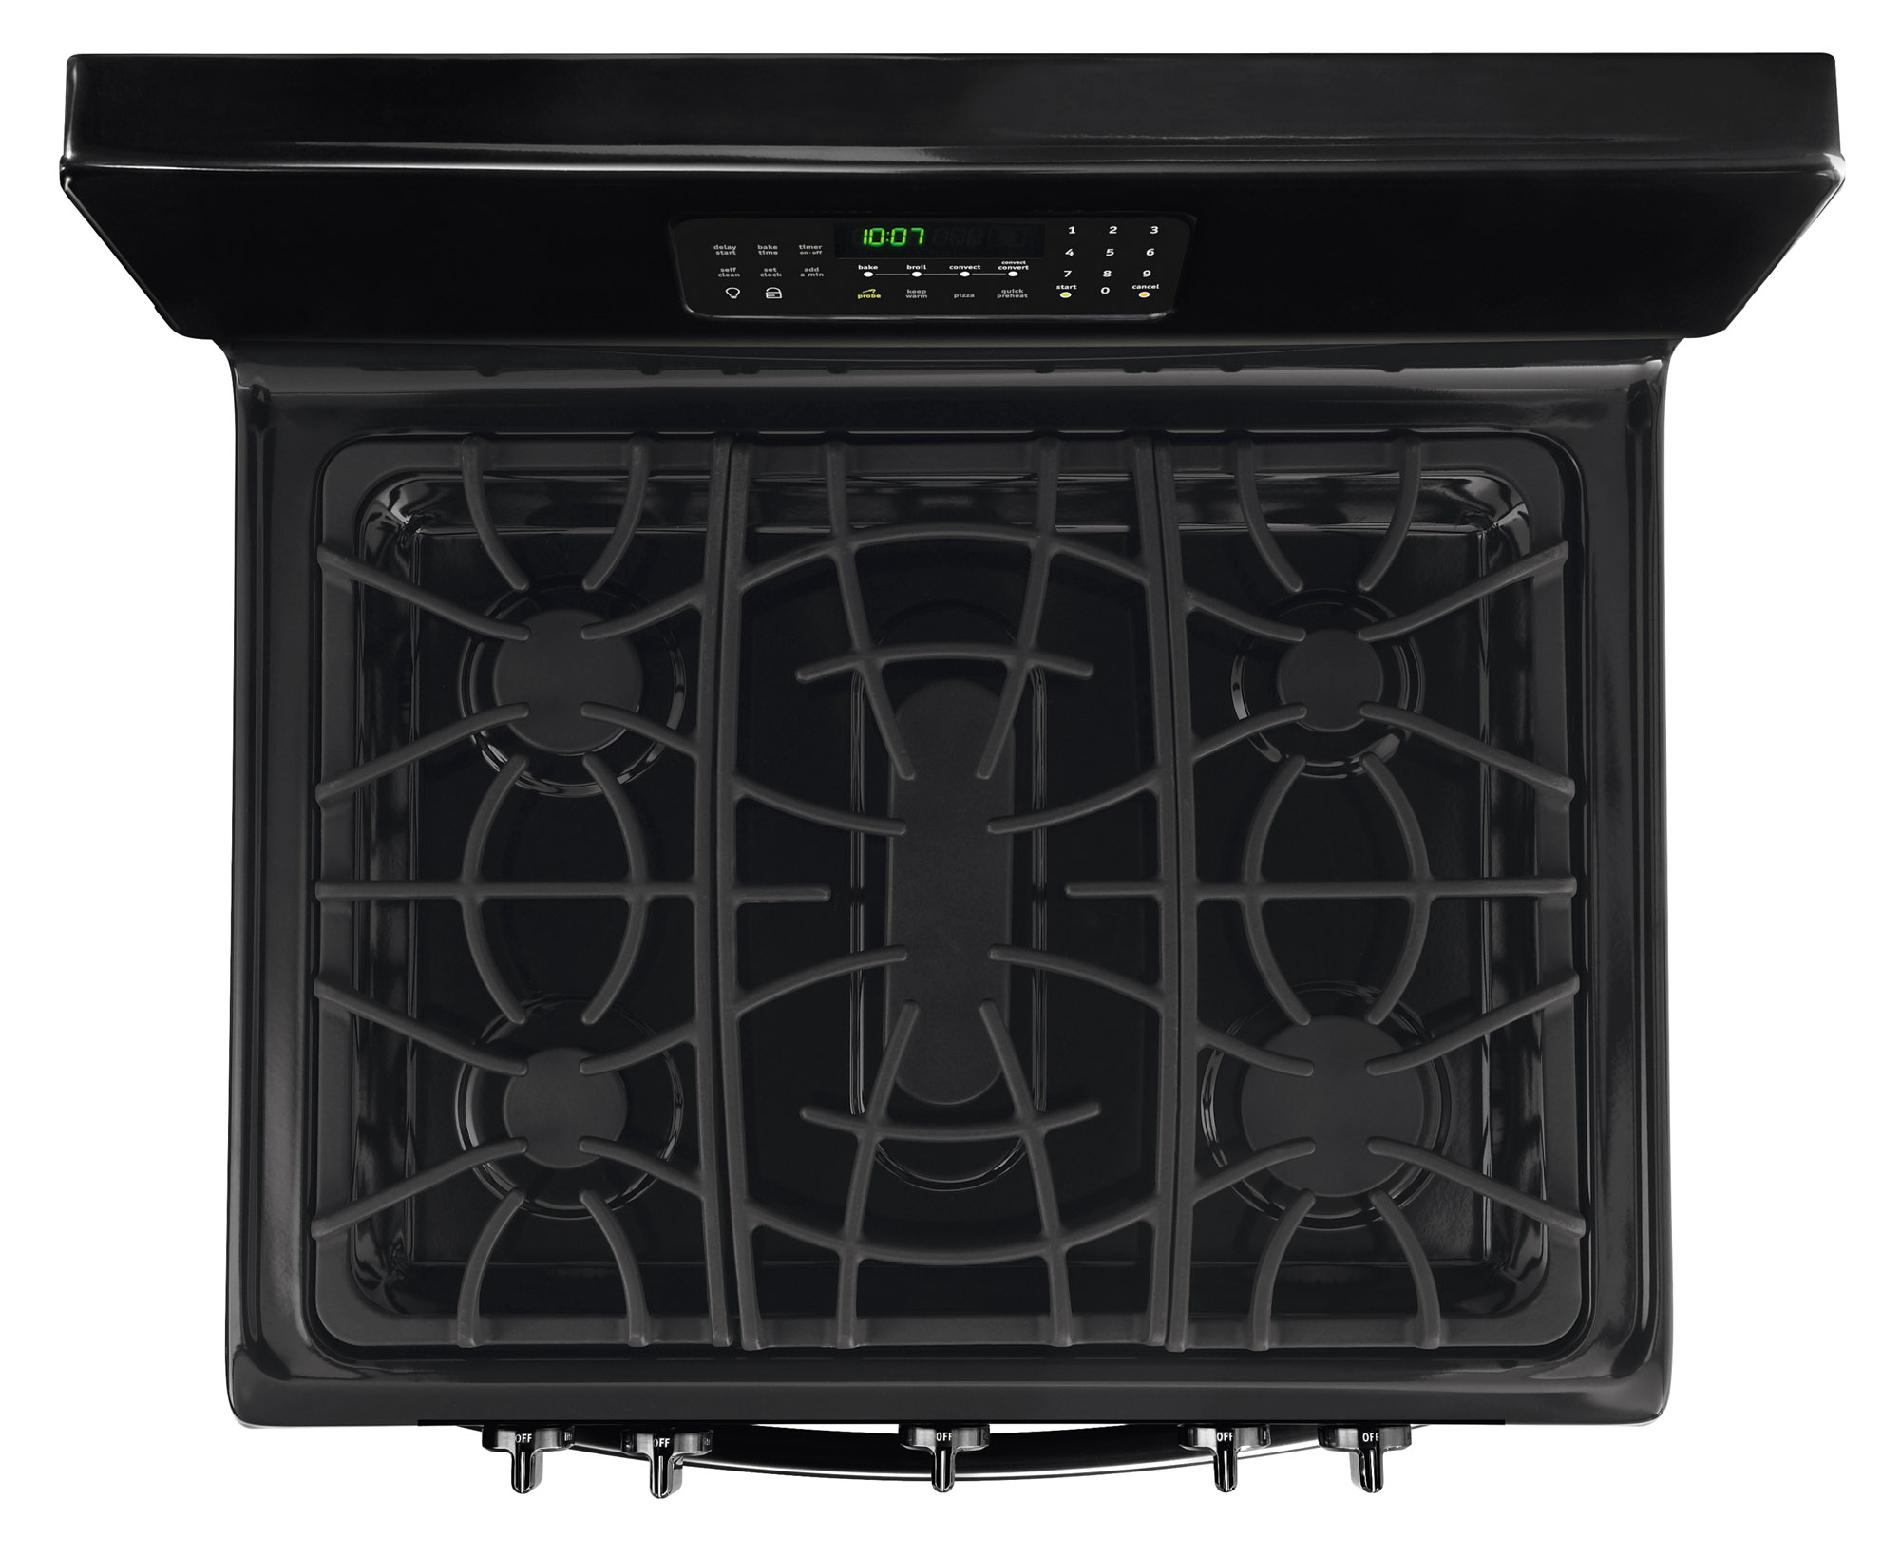 Frigidaire Gallery 5.0 cu. ft. Freestanding Gas Range w/ Effortless™ Temperature Probe - Black